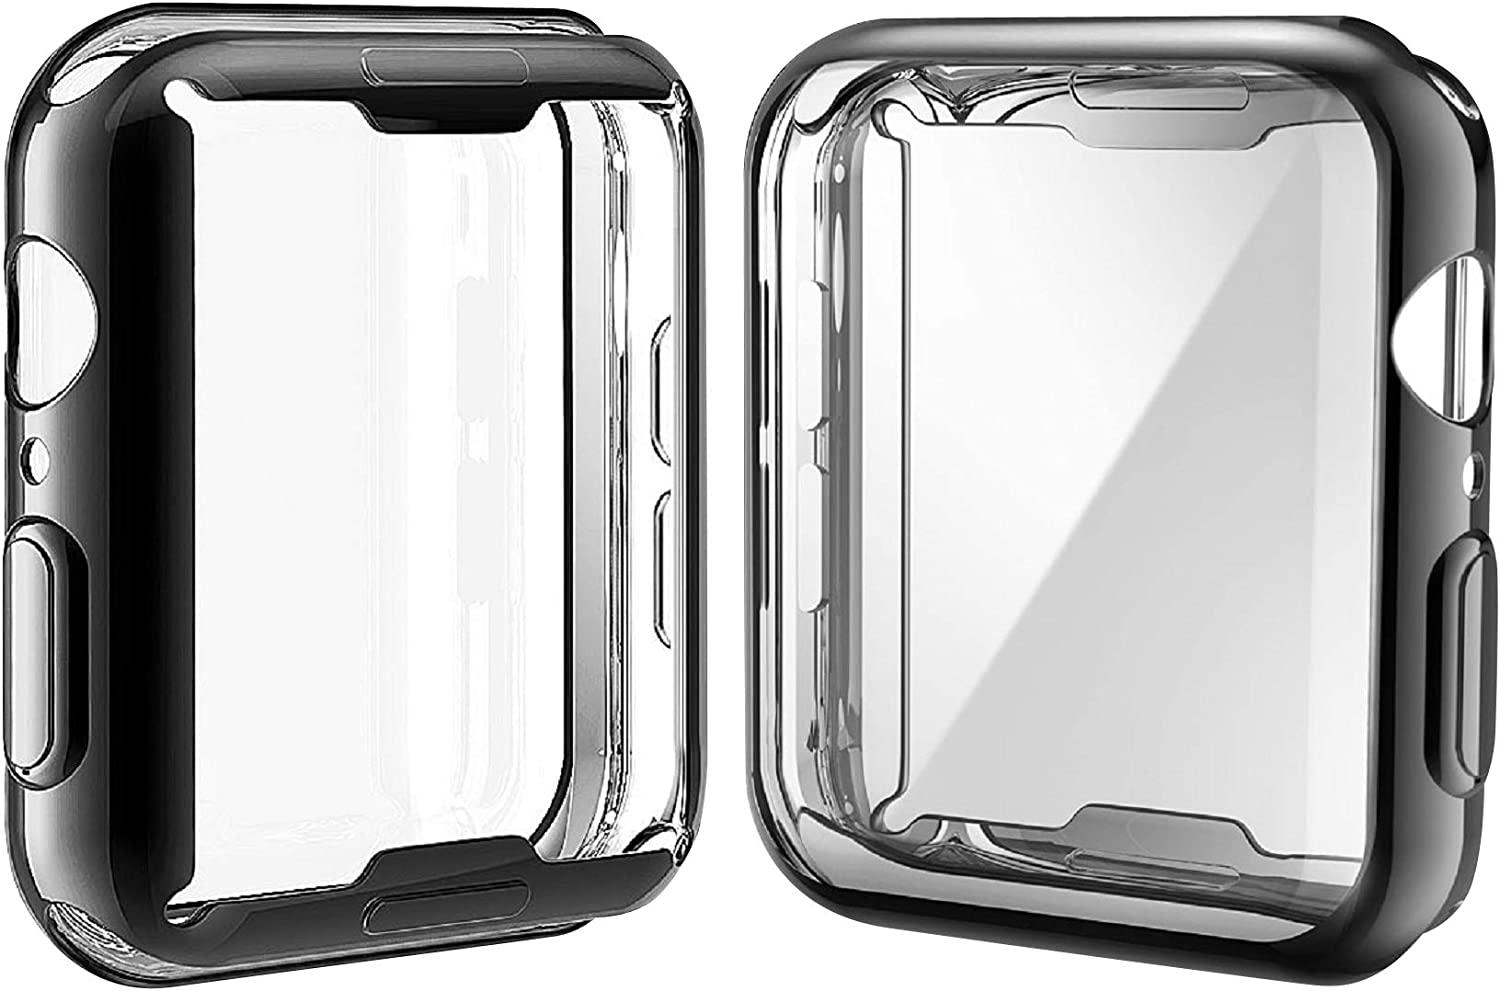 [2-Pack] Julk Case for Apple Watch Series 6 / SE/Series 5 / Series 4 Screen Protector 44mm, New iWatch Overall Protective Case TPU HD Ultra-Thin Cover (1 Black+1 Transparent)